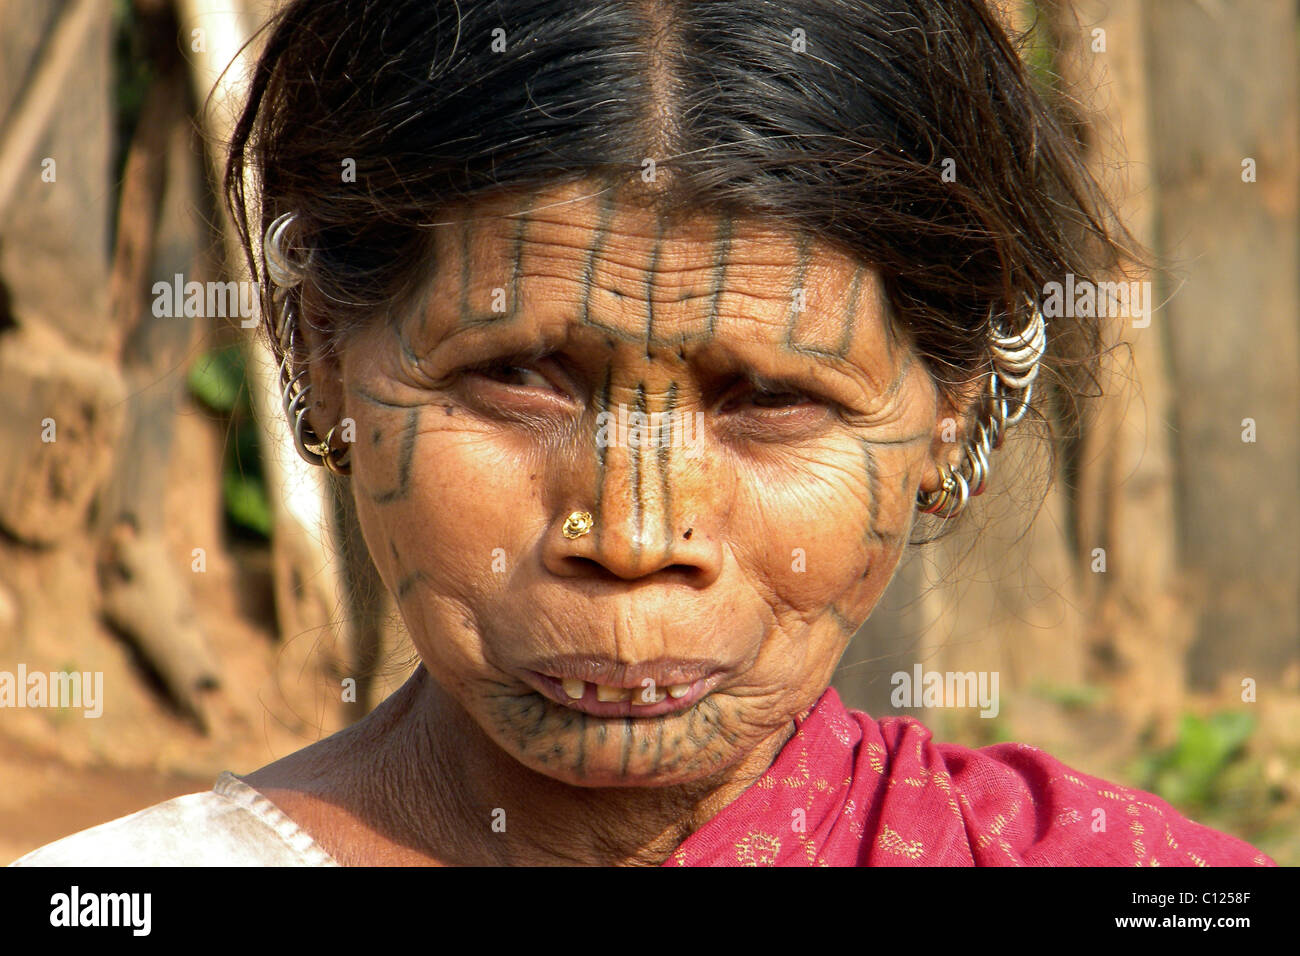 Kutia kondh tribe, Orissa, India - Stock Image